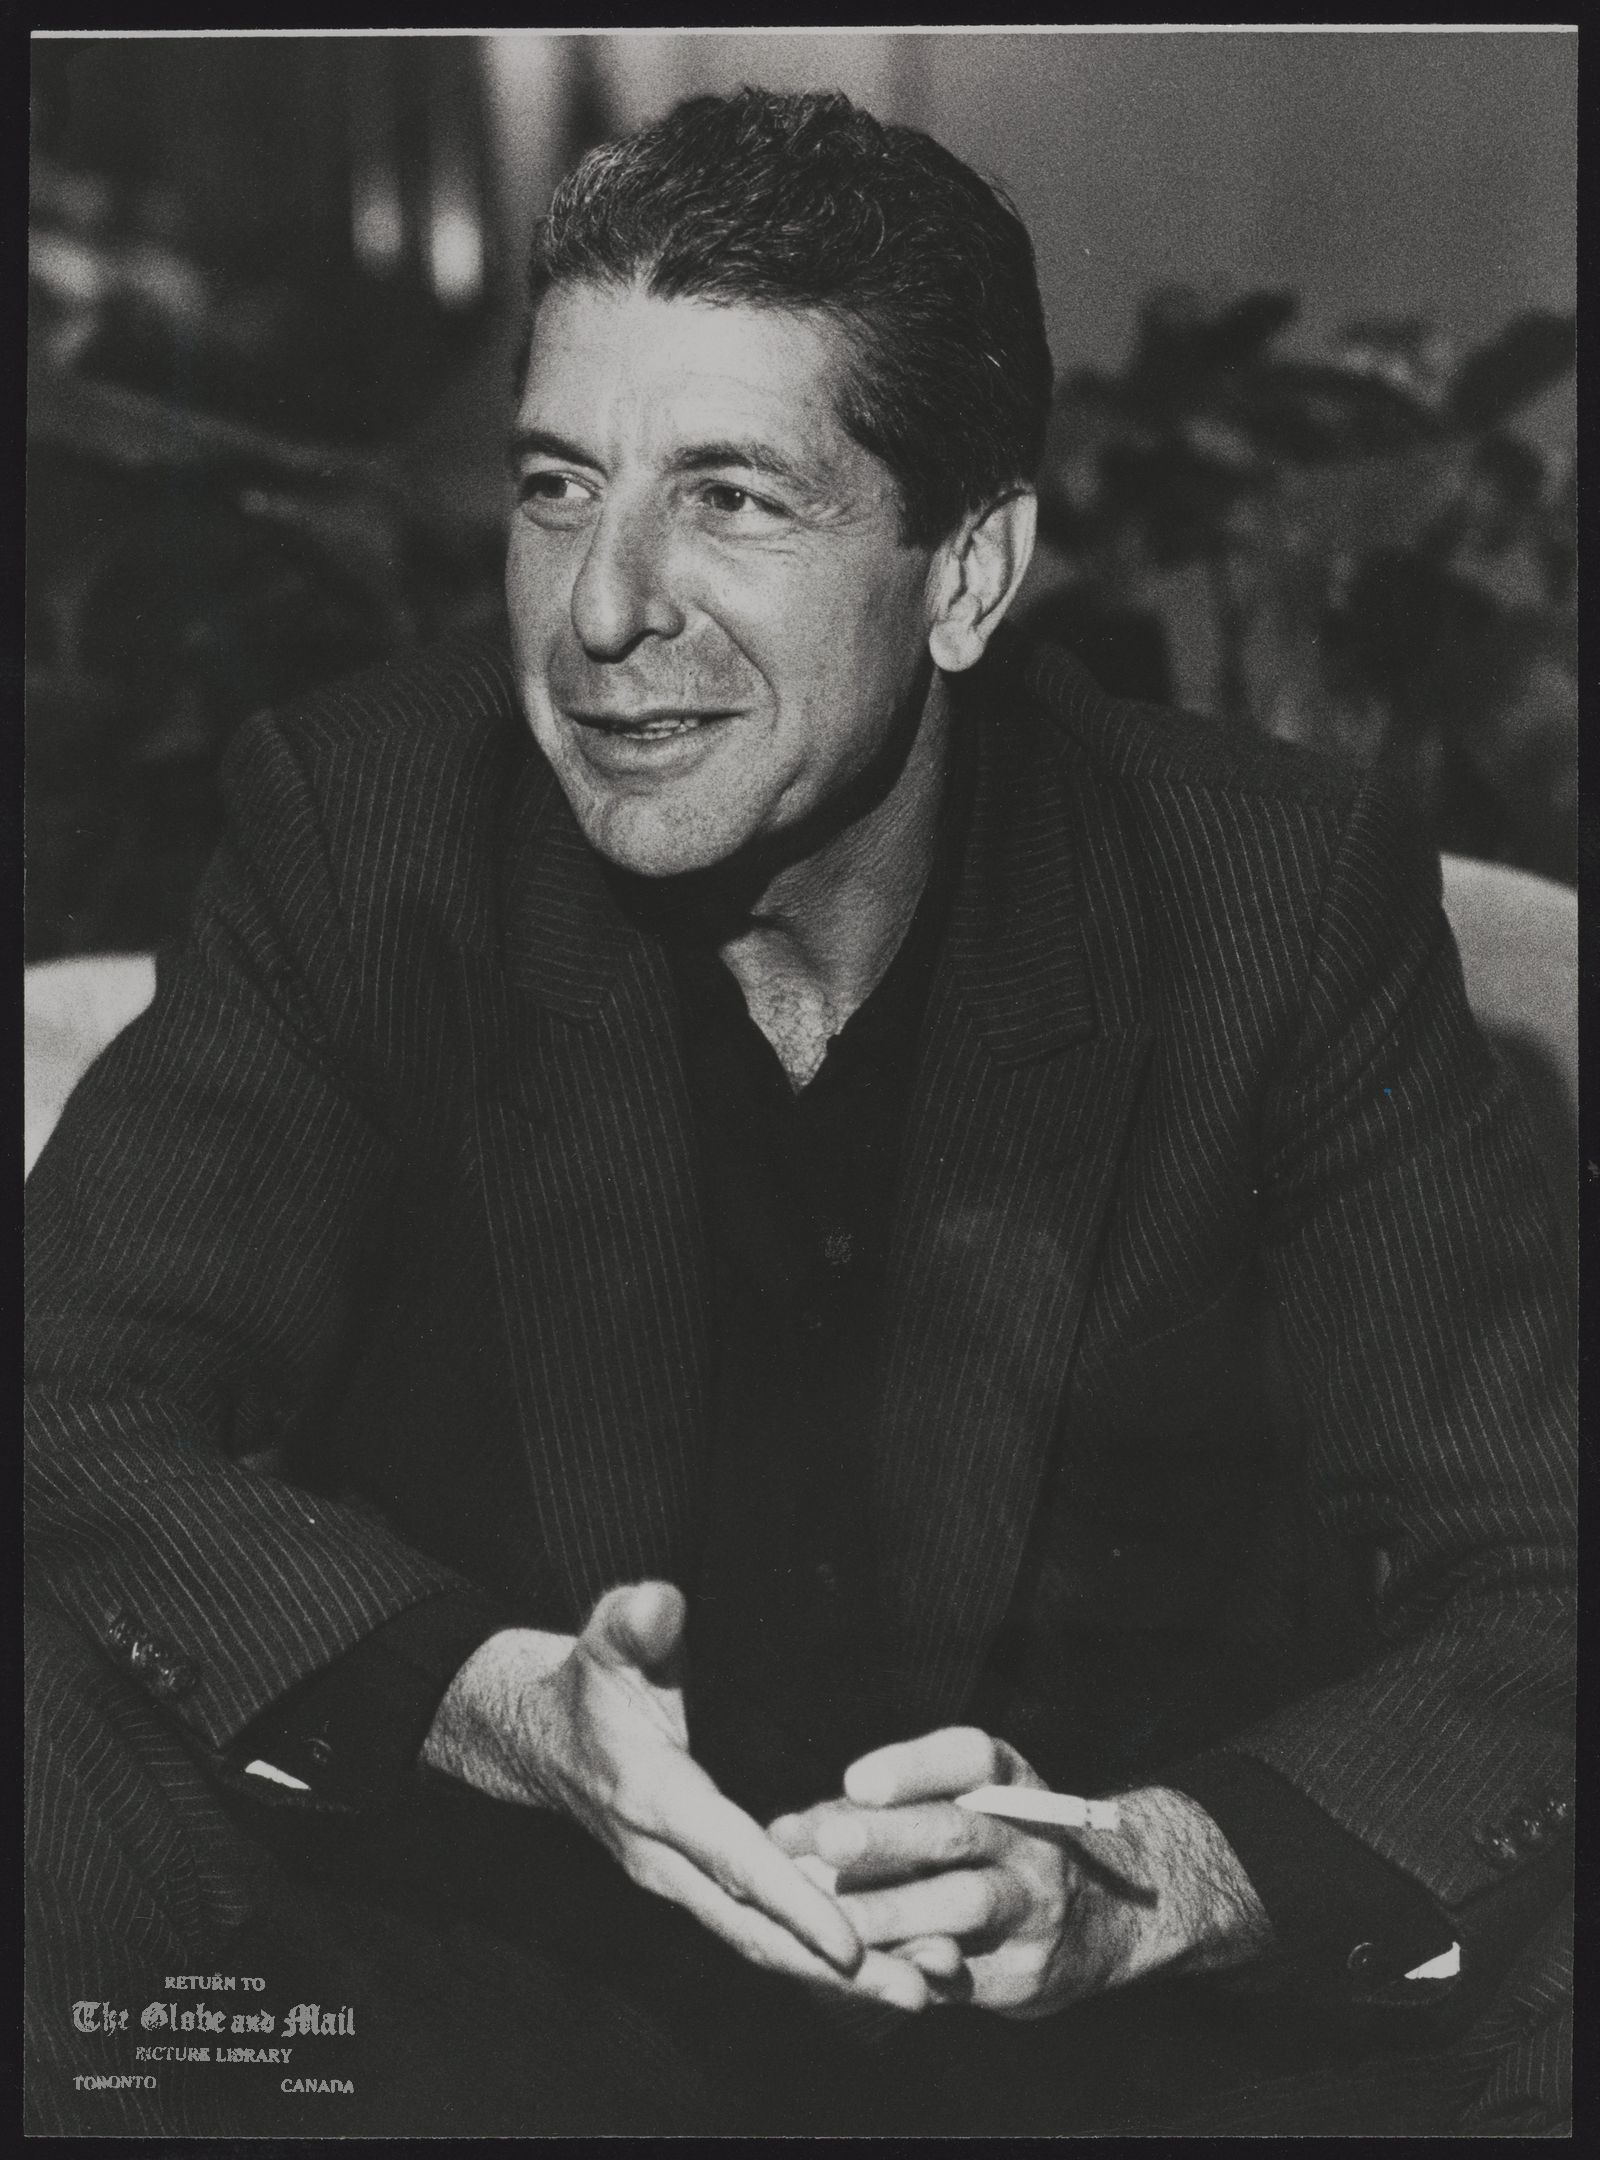 The notes transcribed from the back of this photograph are as follows: Leonard COHEN Poet